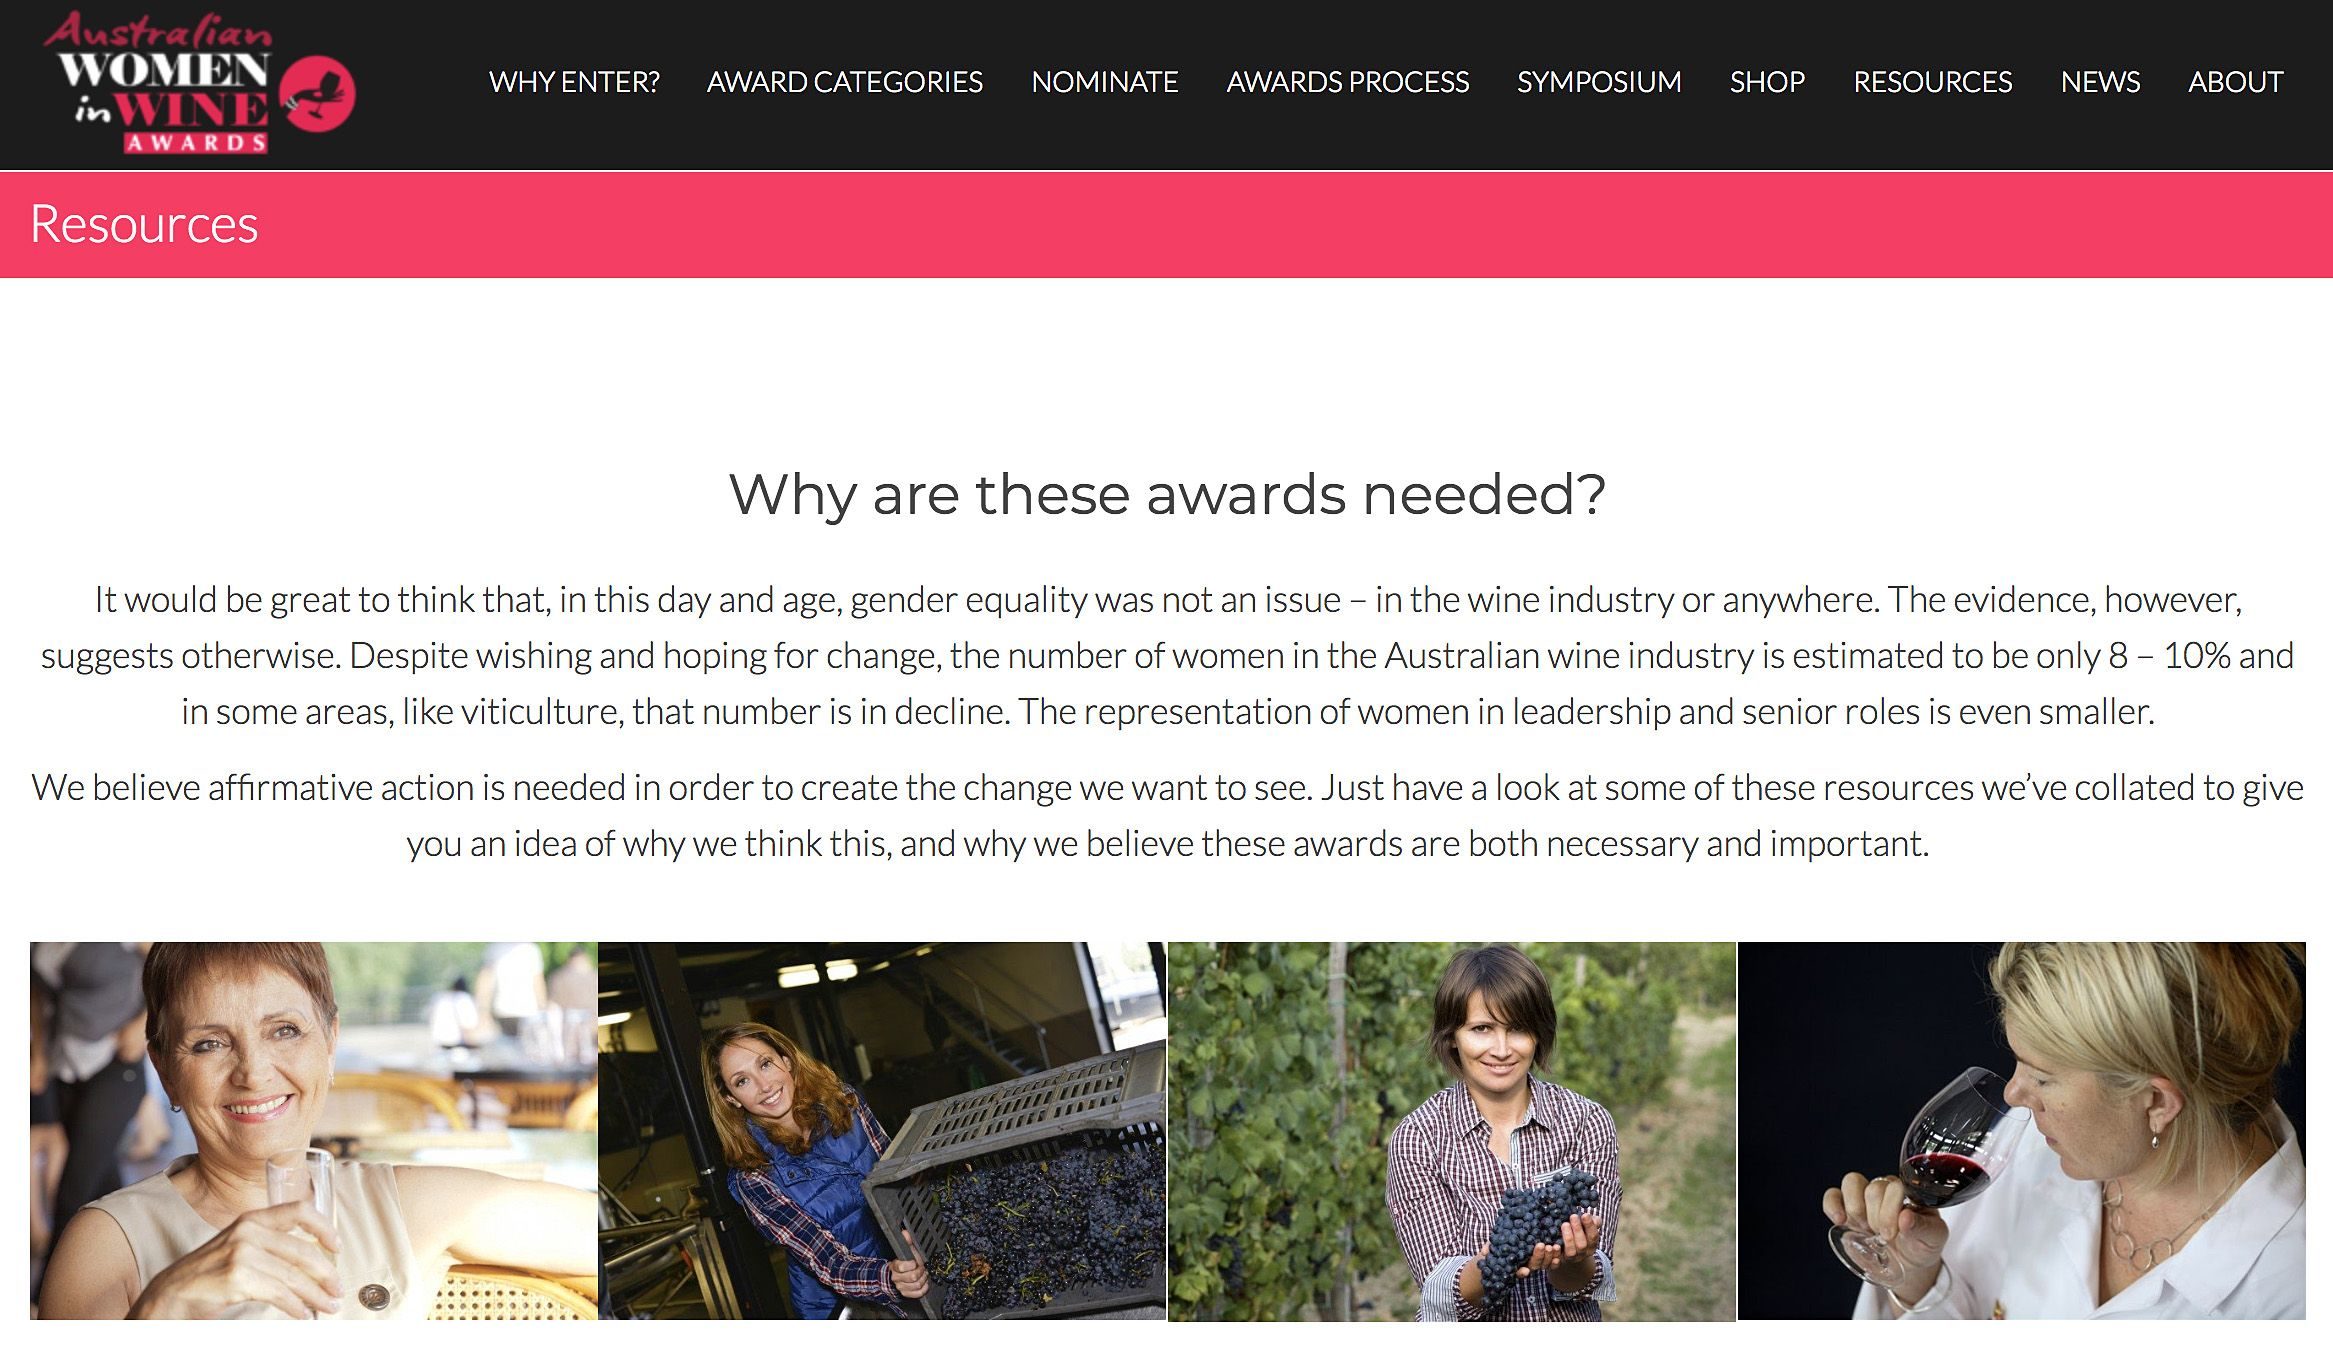 Women in Wine Awards web site.